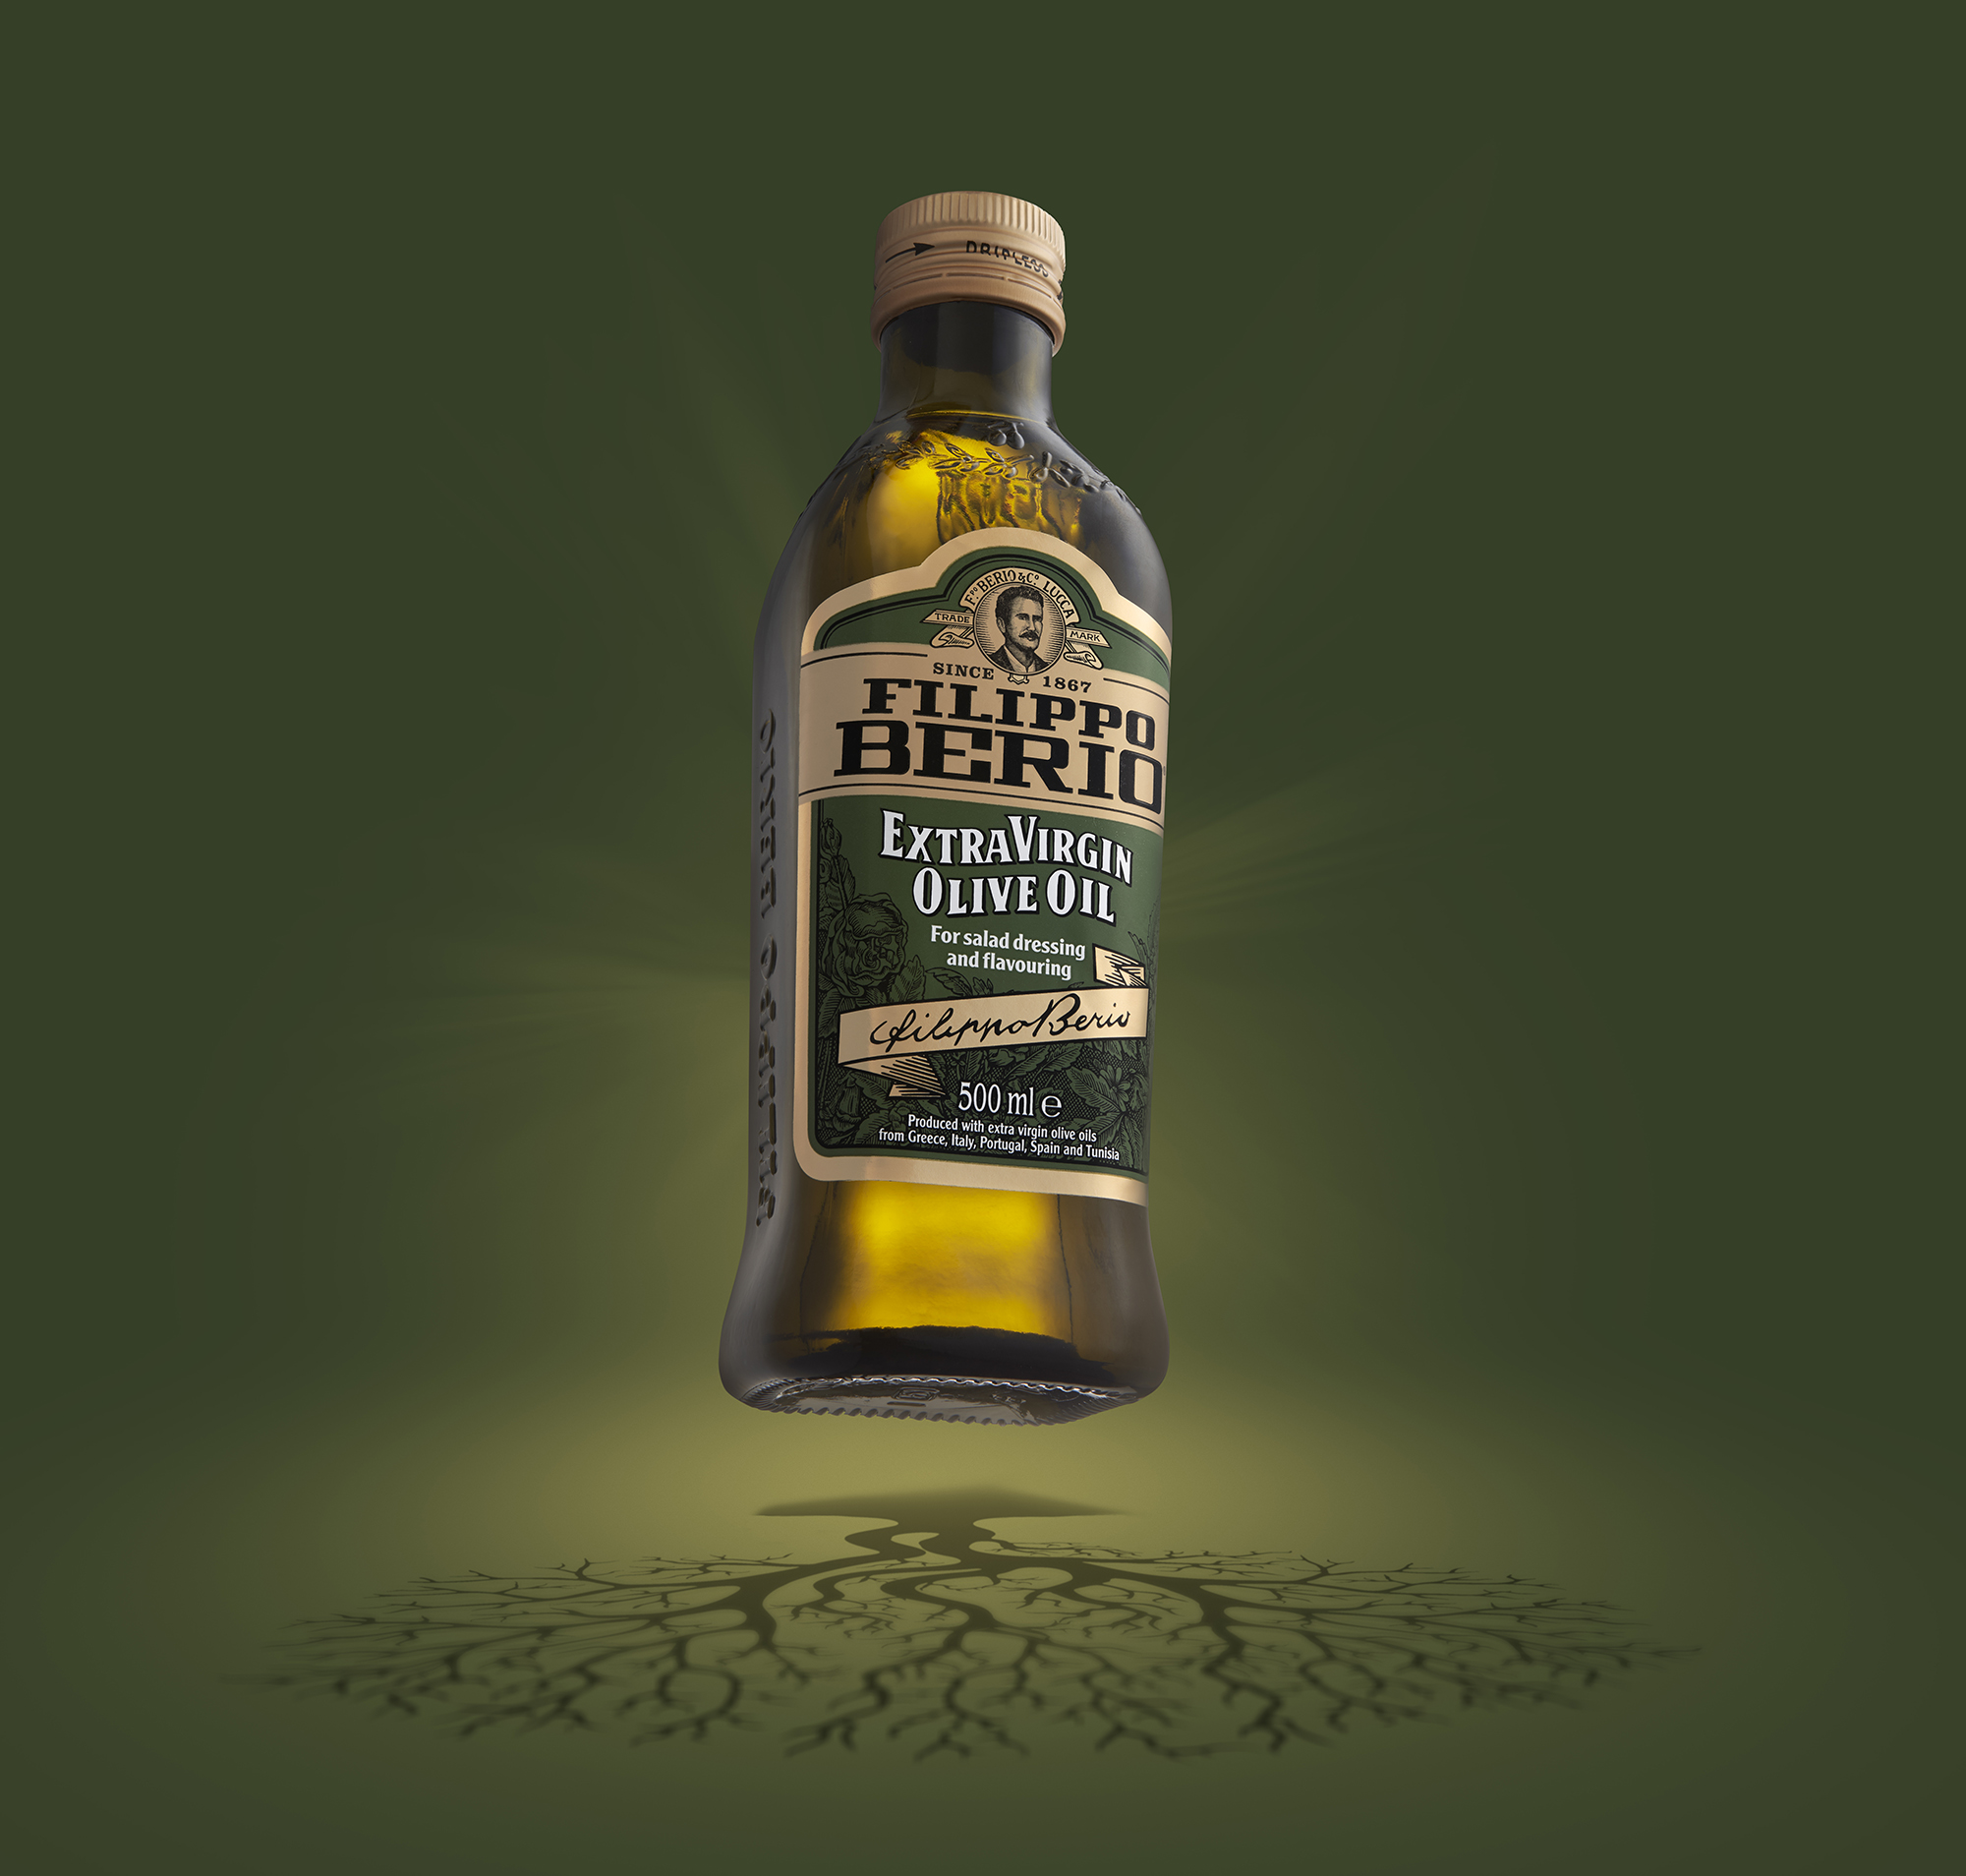 Advertising product image of Olive Oil bottle by photographer Ian Knaggs